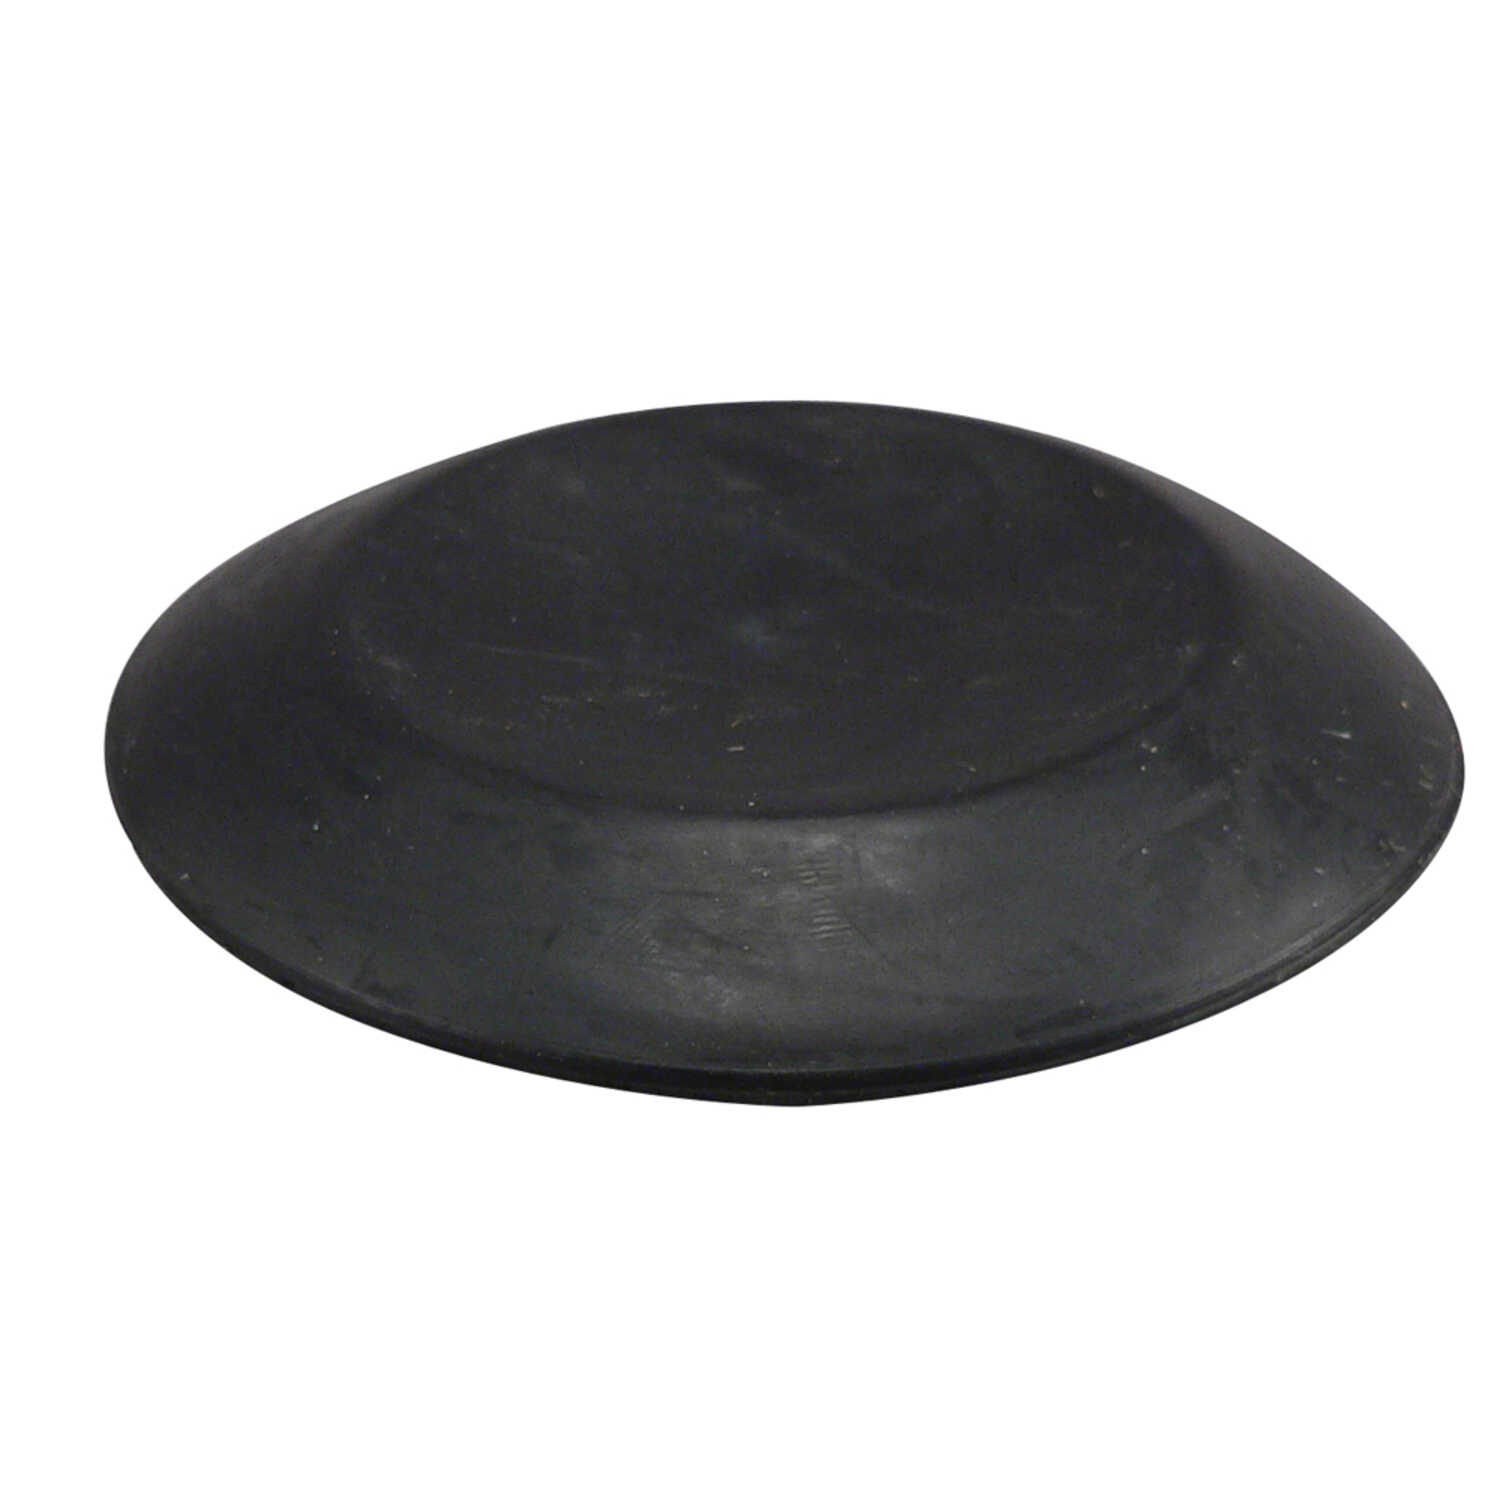 Plumb Pak  Seat Disc Snap On  Rubber  For American Standard